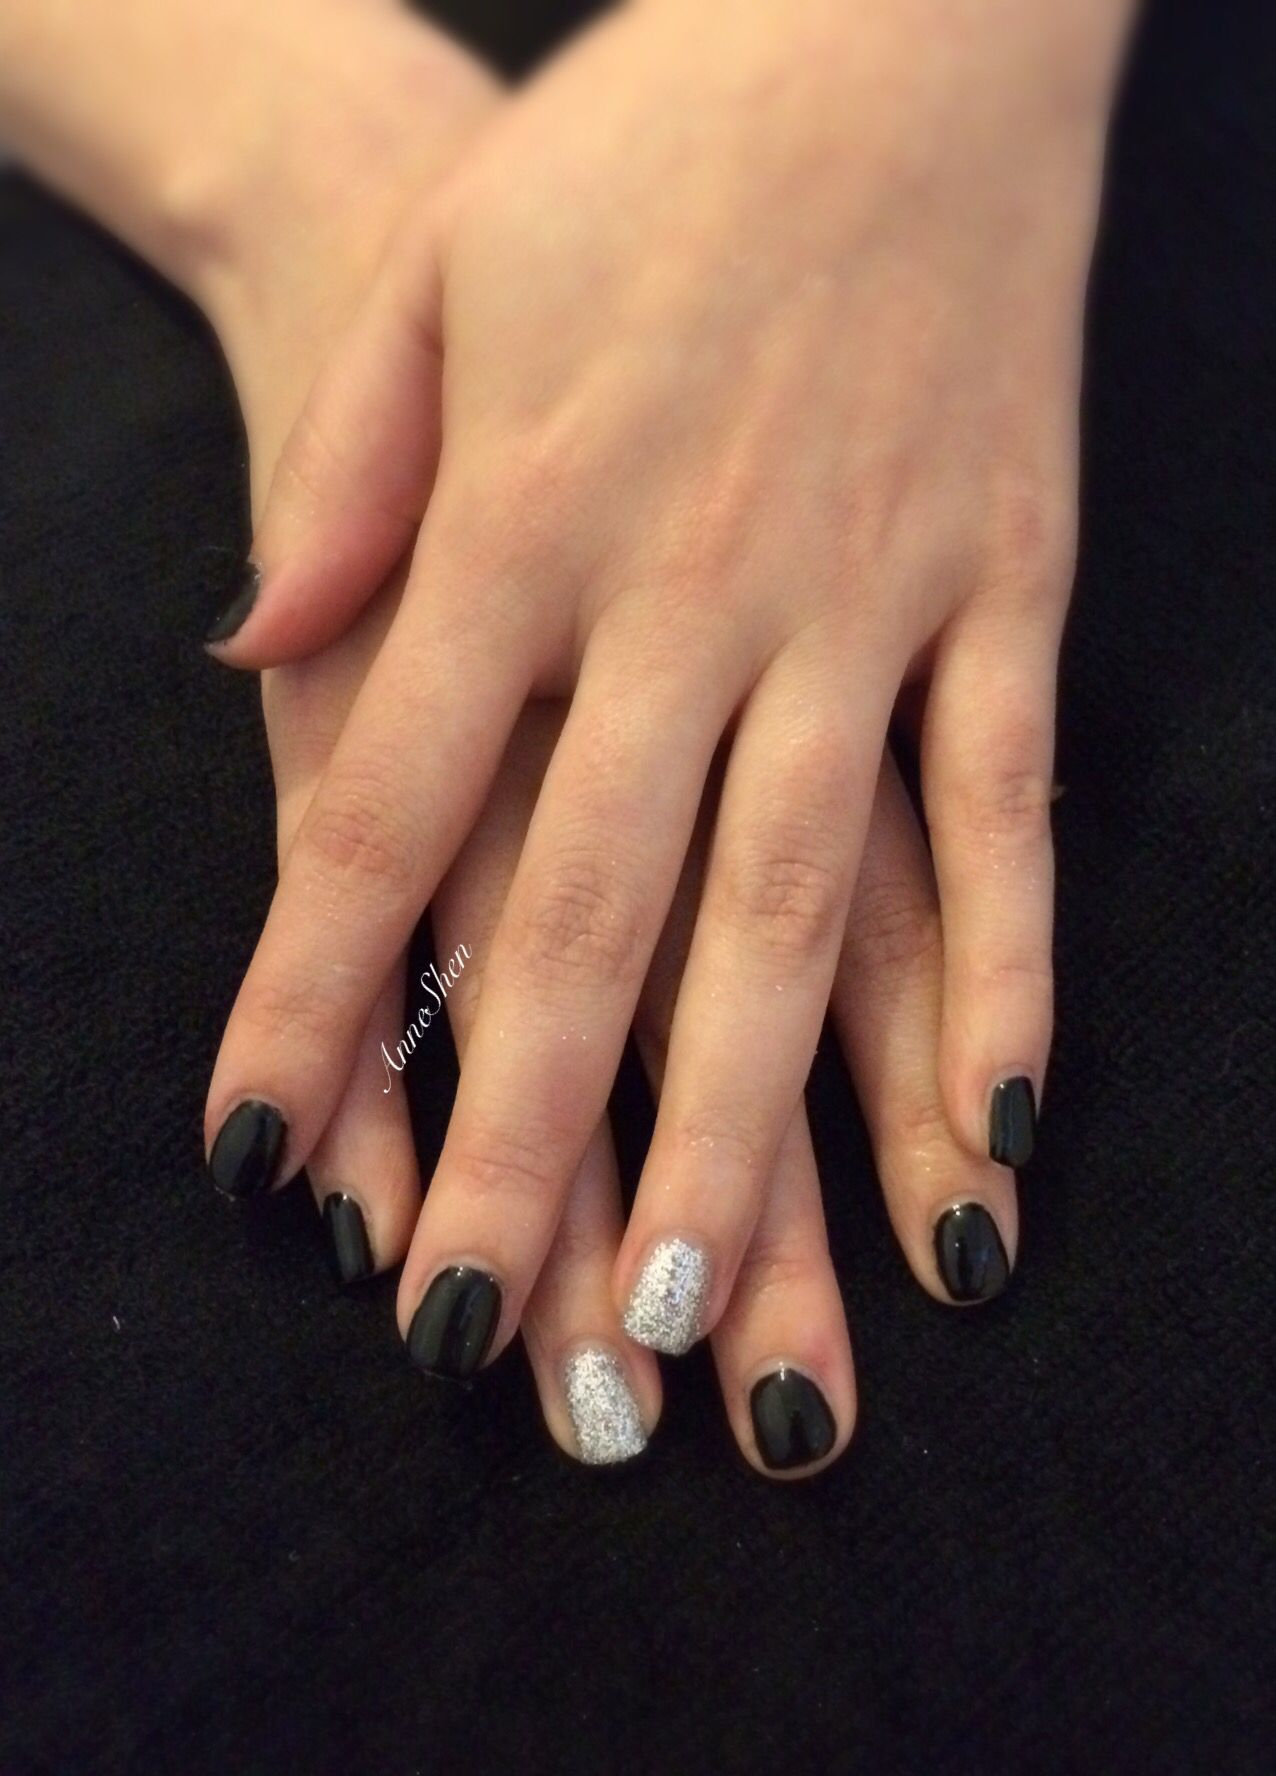 Black Nails With Glitter On Ring Finger Gelnails Gels Glitter Sparkle Black Black Nails With Glitter Black Nails